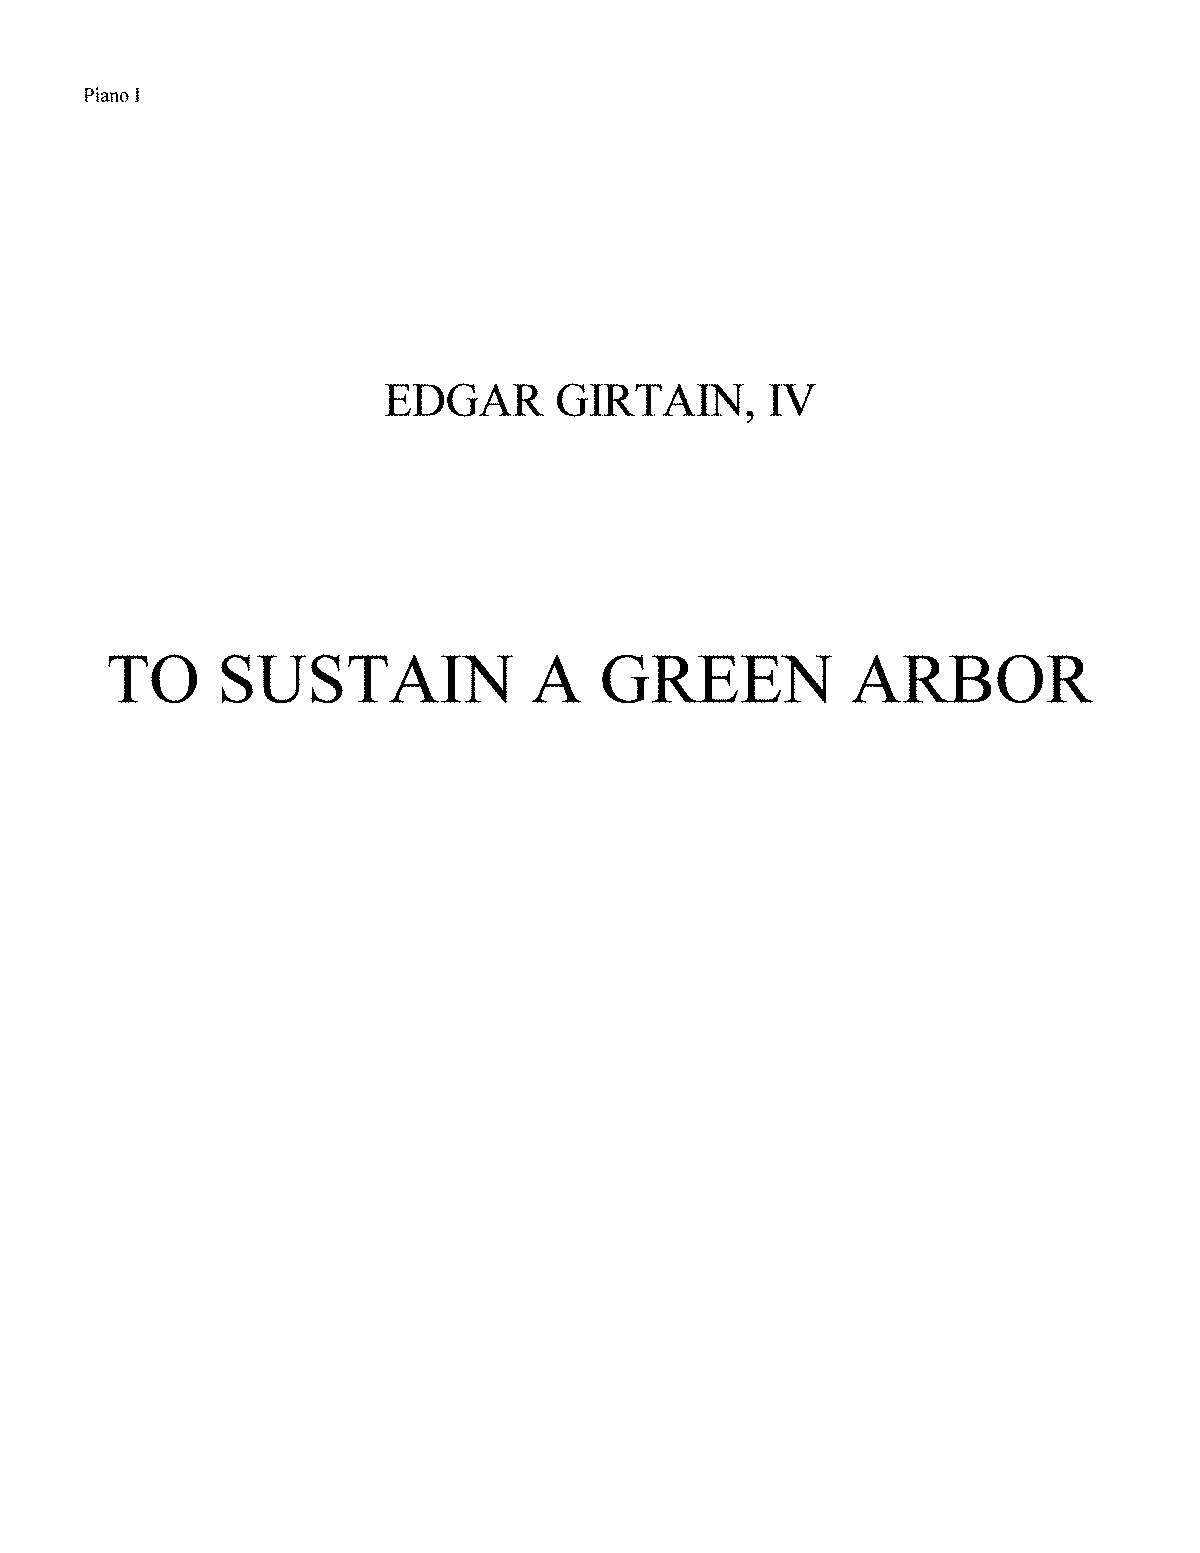 PMLP204210-TO SUSTAIN A GREEN ARBOR (2011) Piano I.pdf